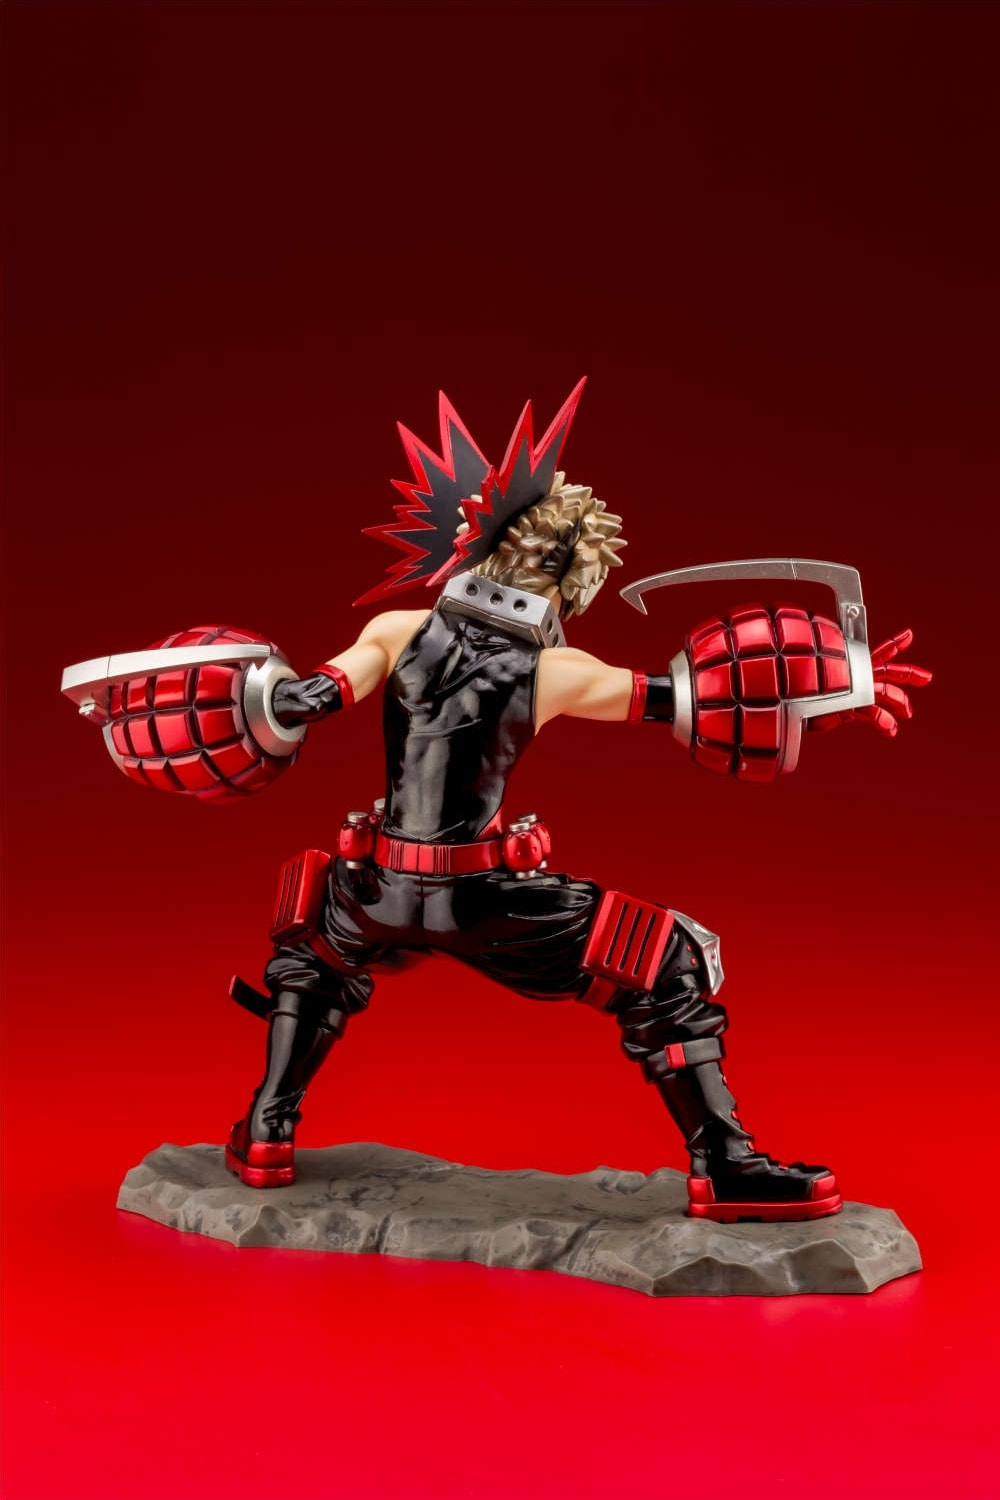 ARTFX-J-爆豪勝己-Limited-color-edition-004